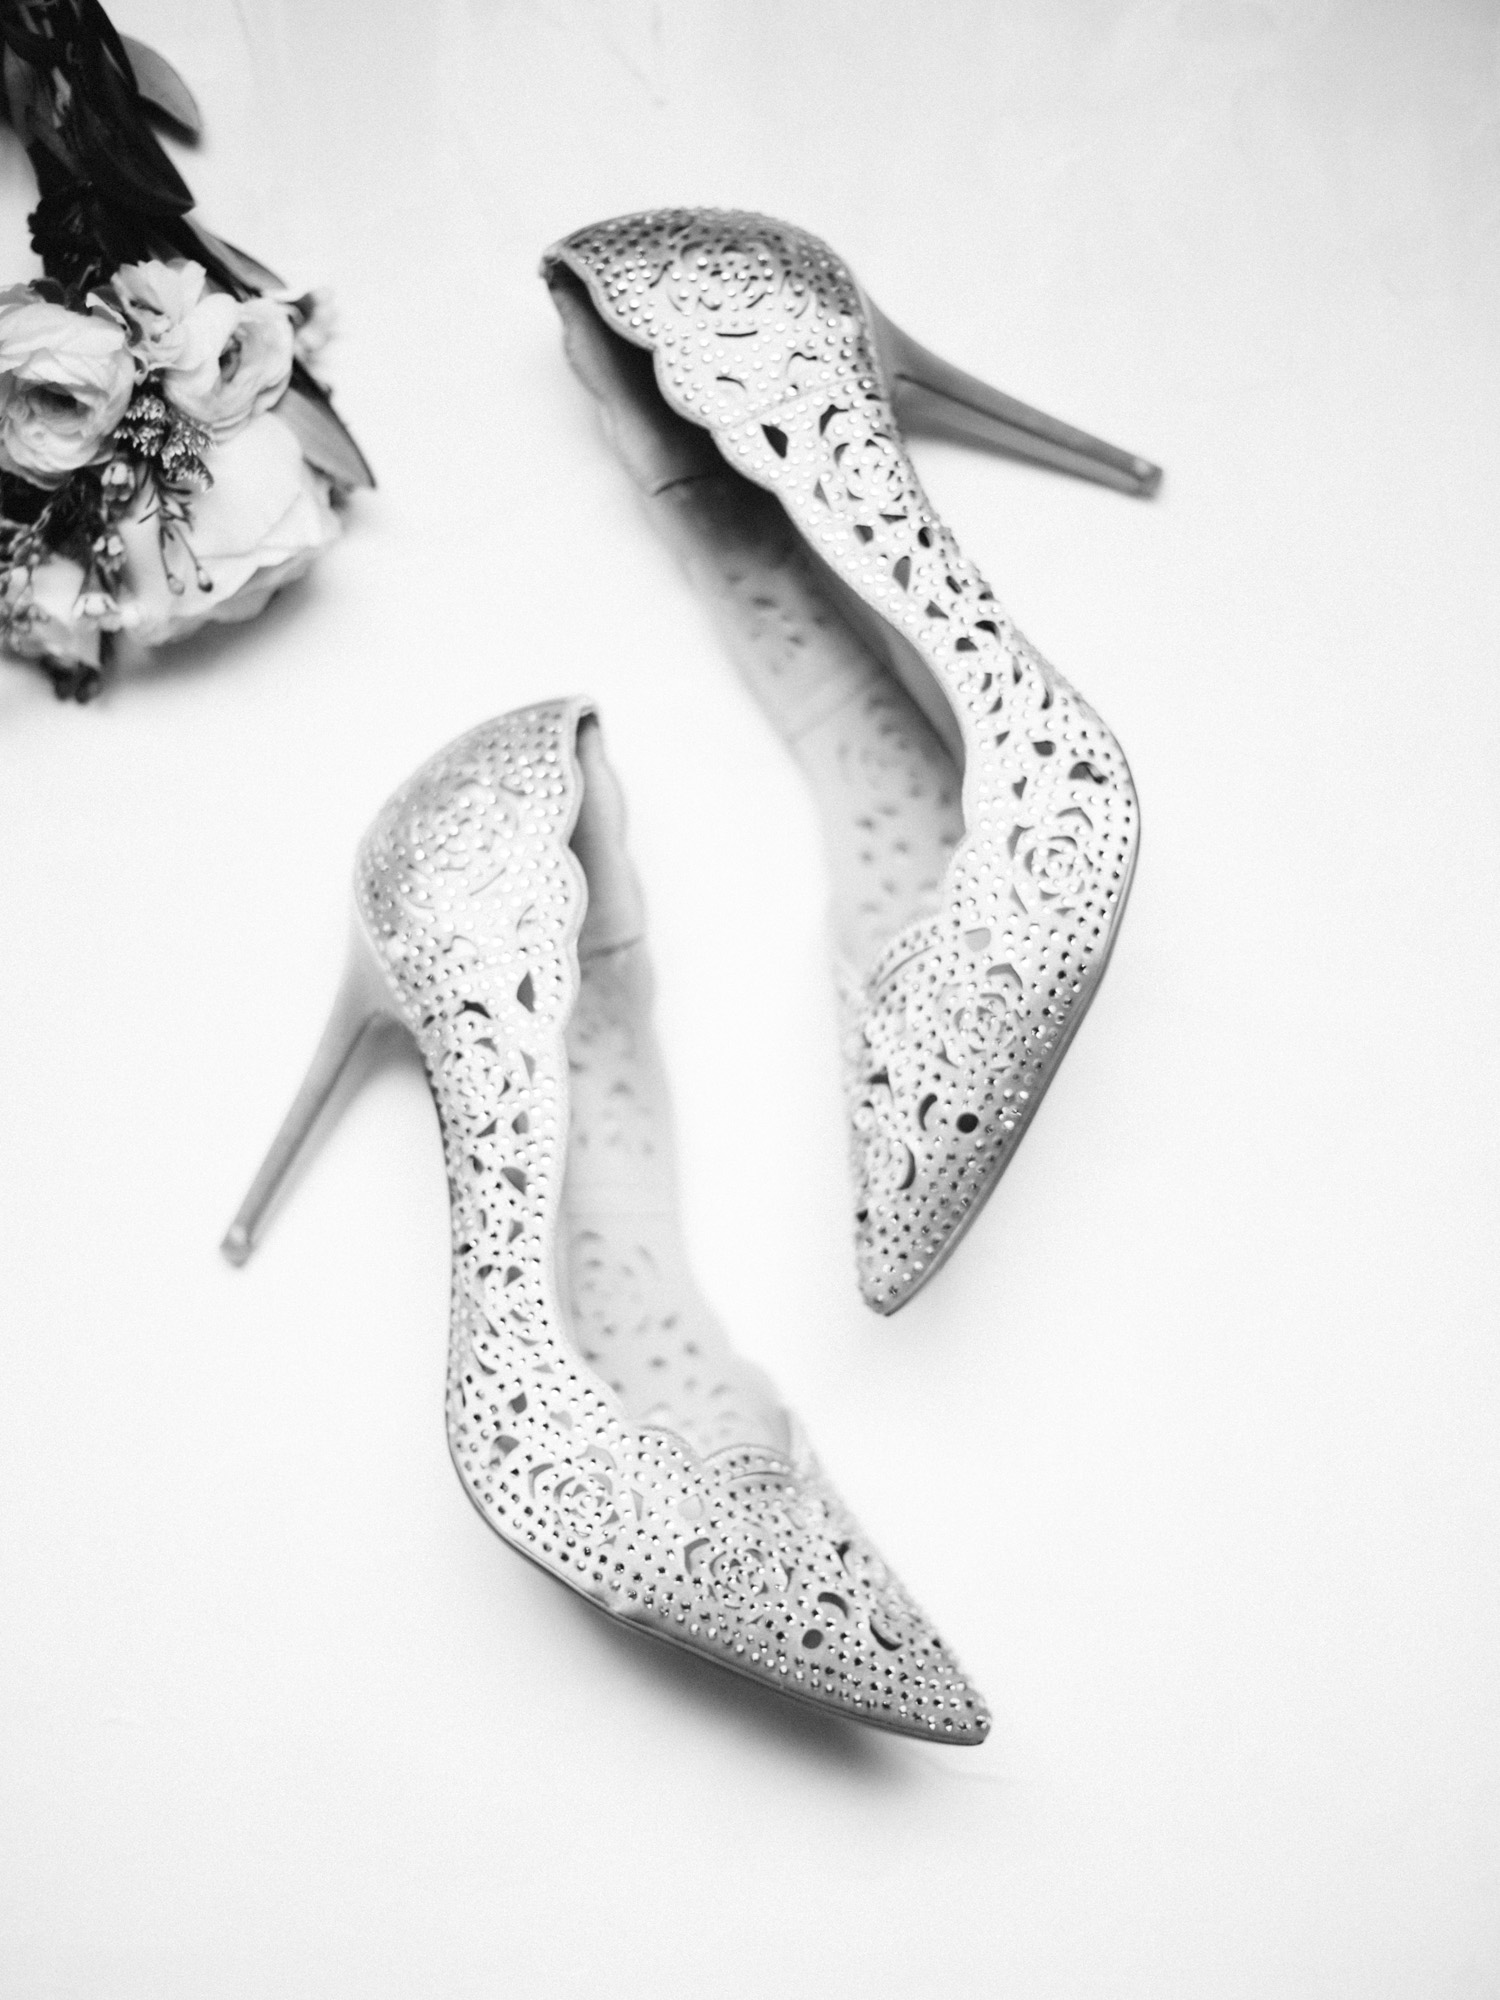 lace wedding stilettos with cutout detail rest on a white background